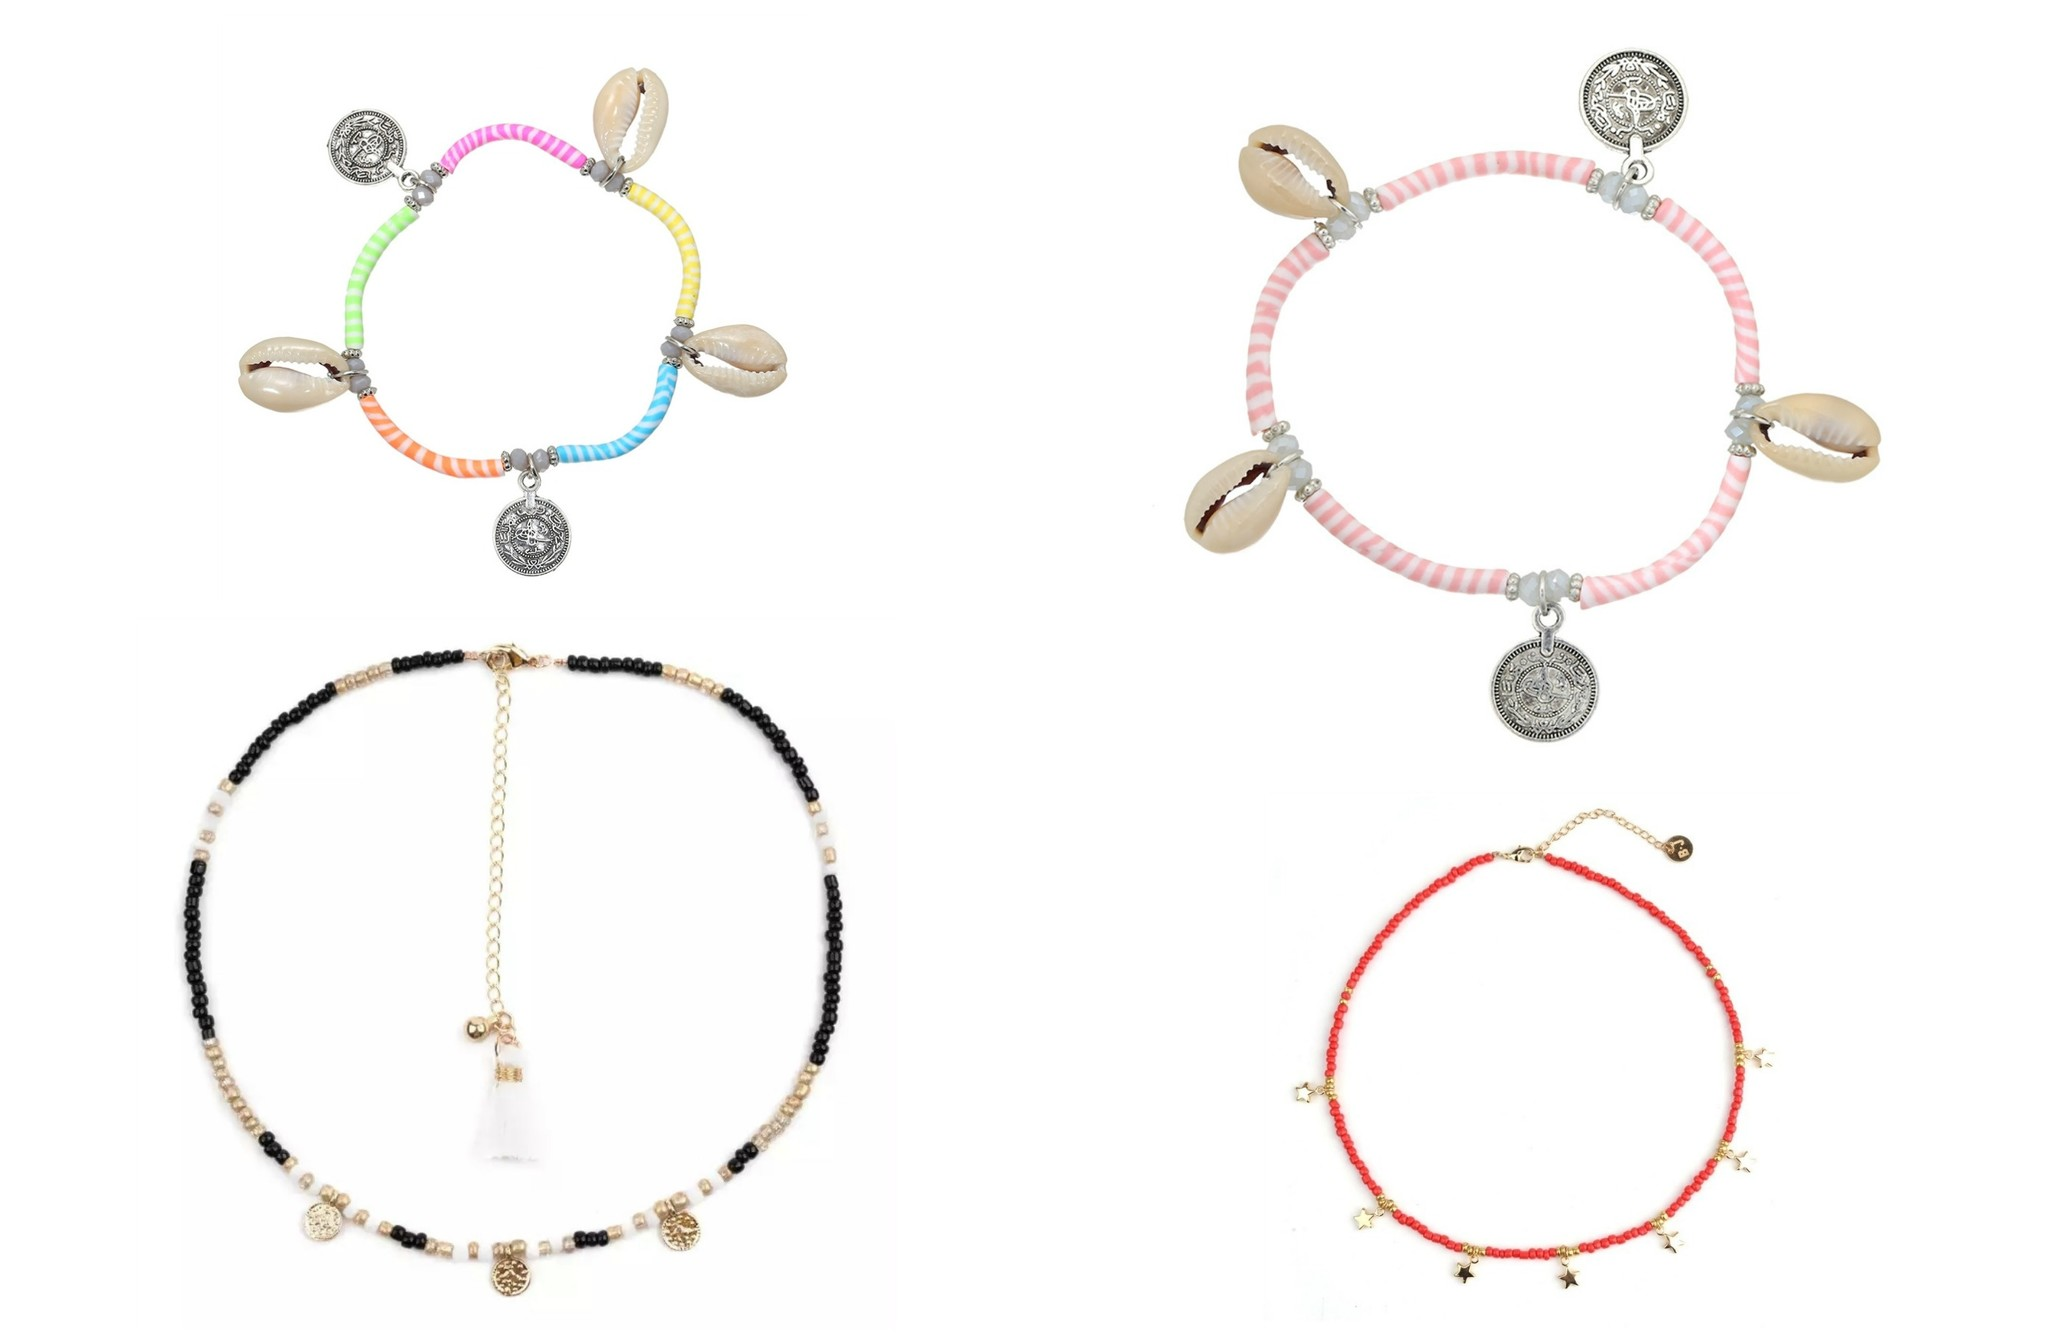 shop surfsieraden bij fashion-click.nl zomer 2019 trends fashion